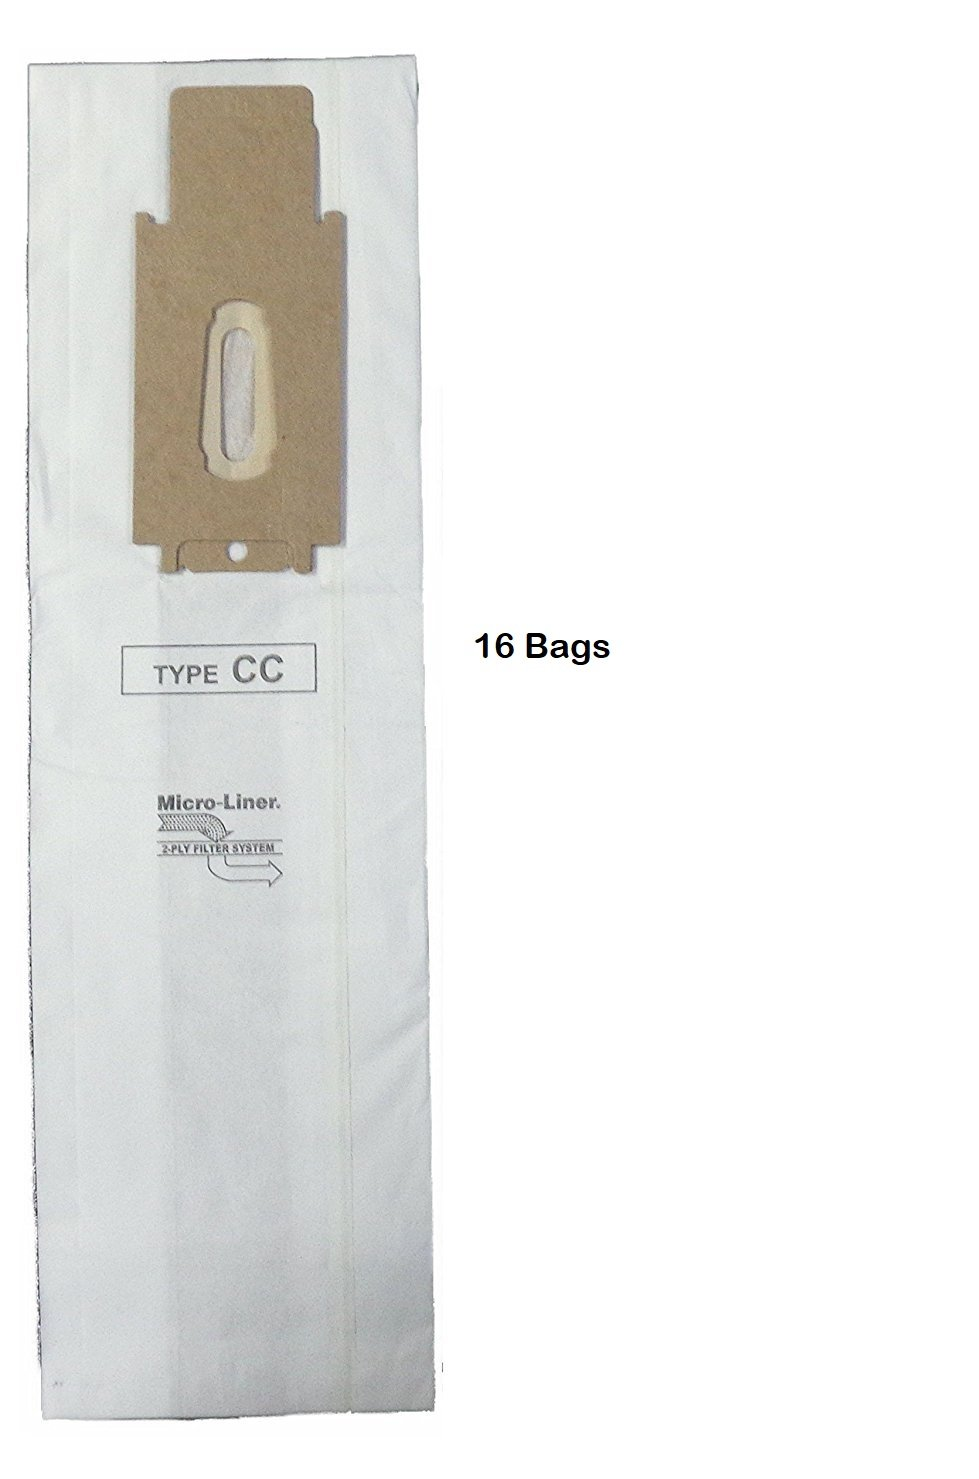 Oreck XL & CC Microlined Filtration Bags by Home Care Products, 16 bags - CCPK80H, CCPK80F, CCPK8DW, PK80009, PK80009DW, CCPK8 with Bag Dock